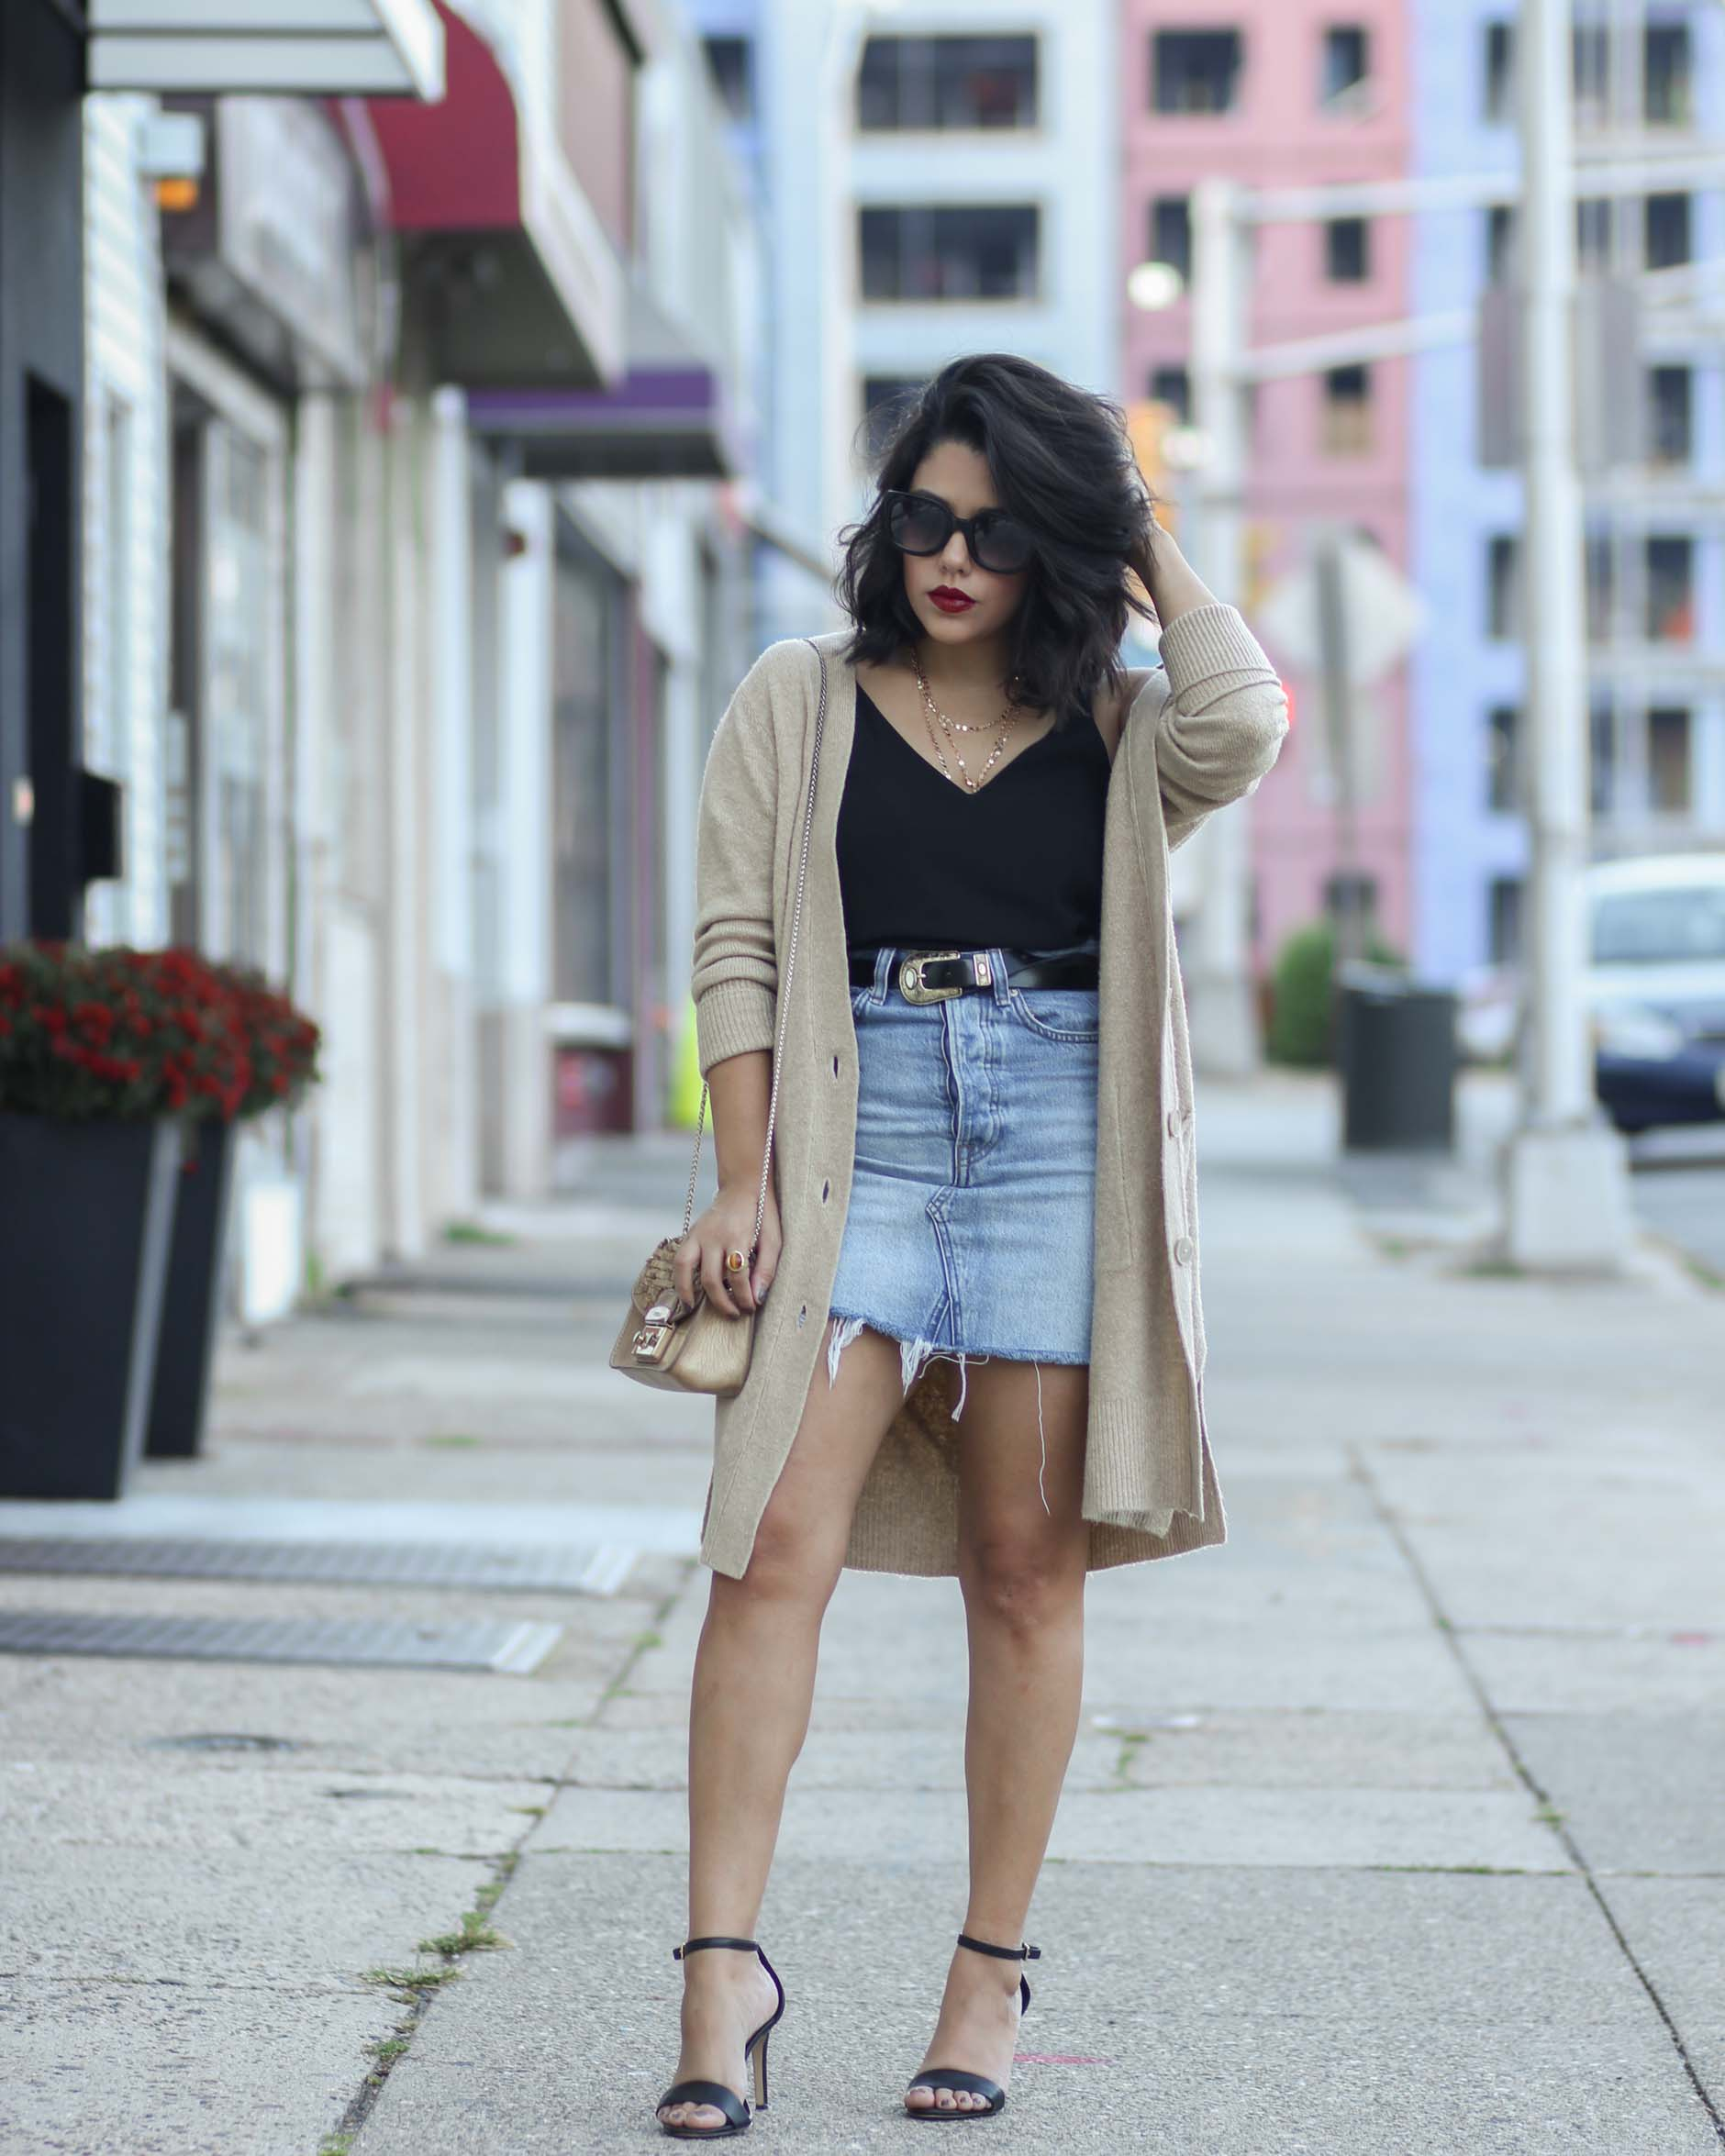 street style shot of style blogger naty michele wearing an oversized cardigan with a denim skirt and belt